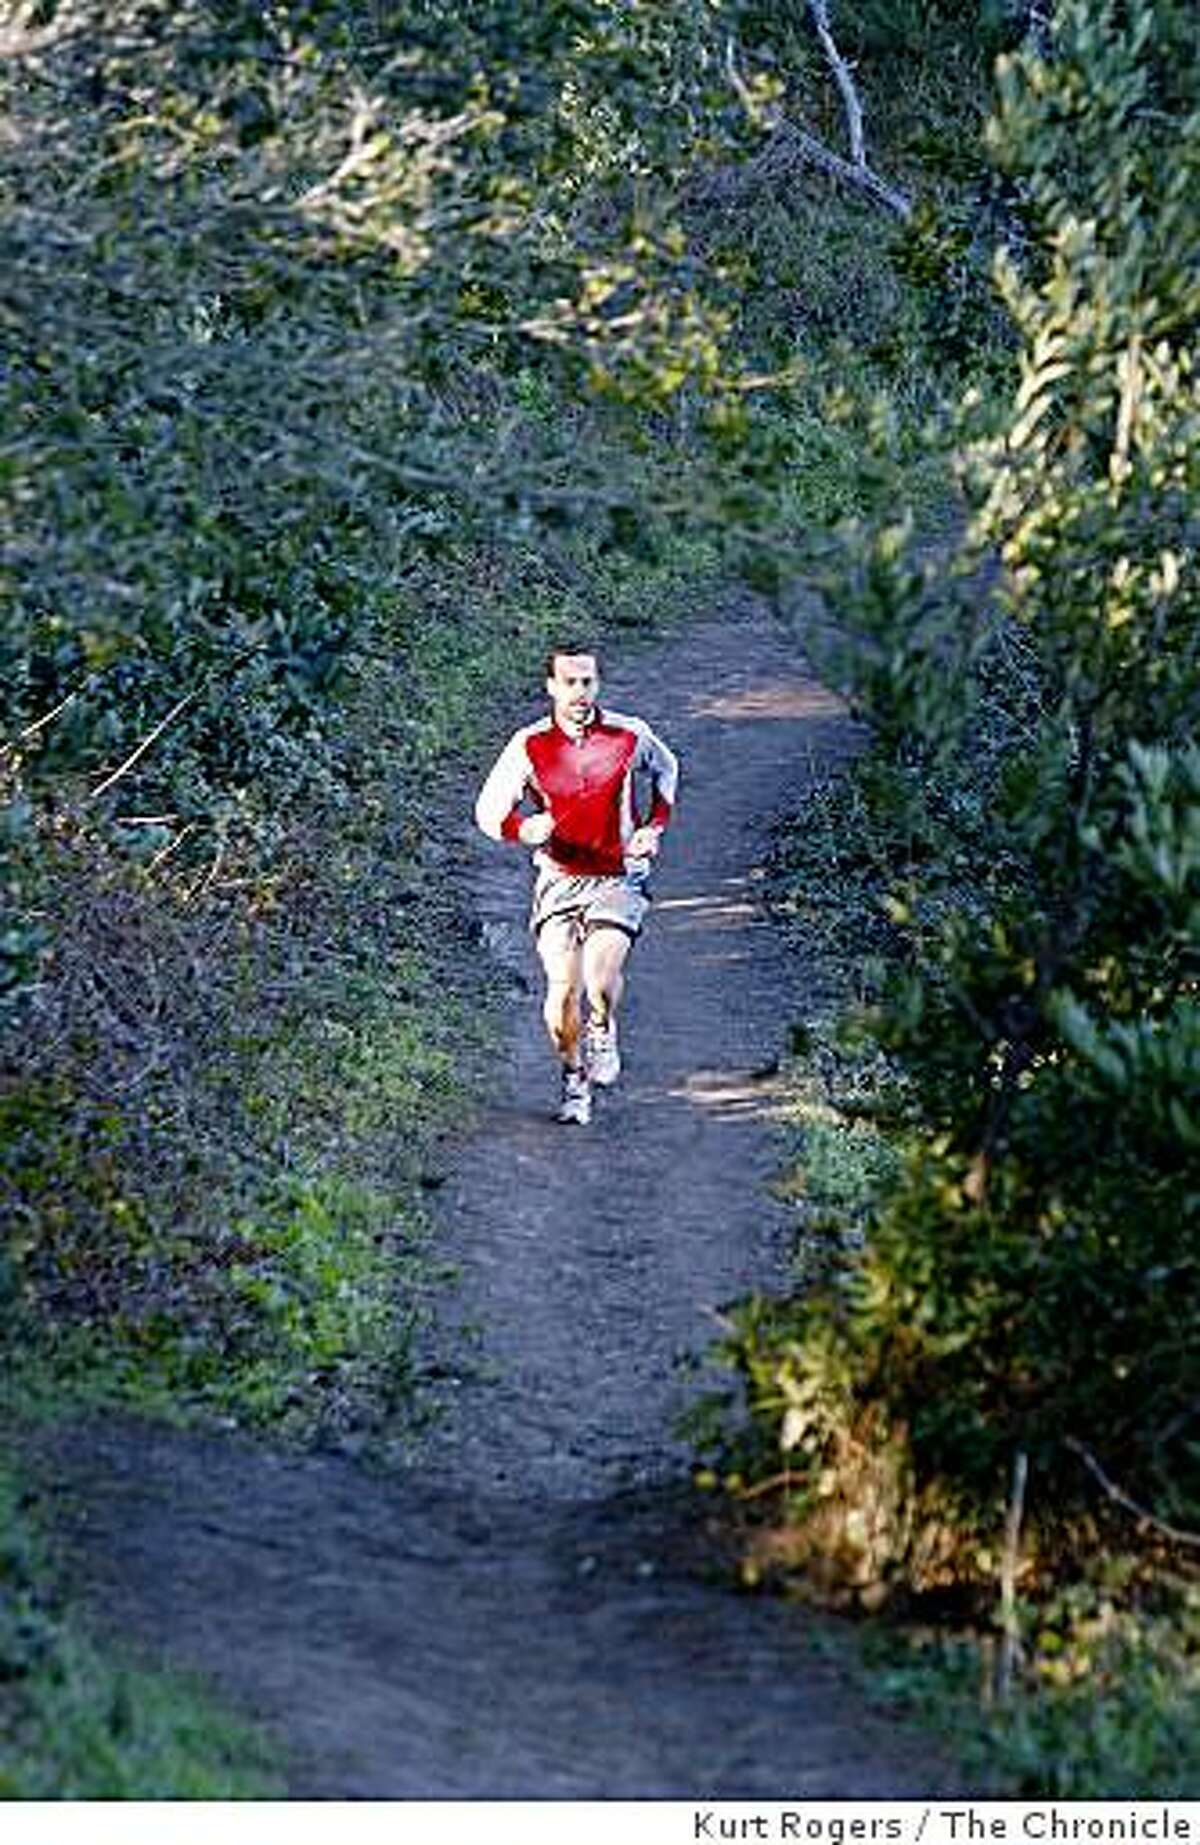 Jasper Halekas is an ultra runner training for the Western States 100 mile race in the hills above Berkeley.